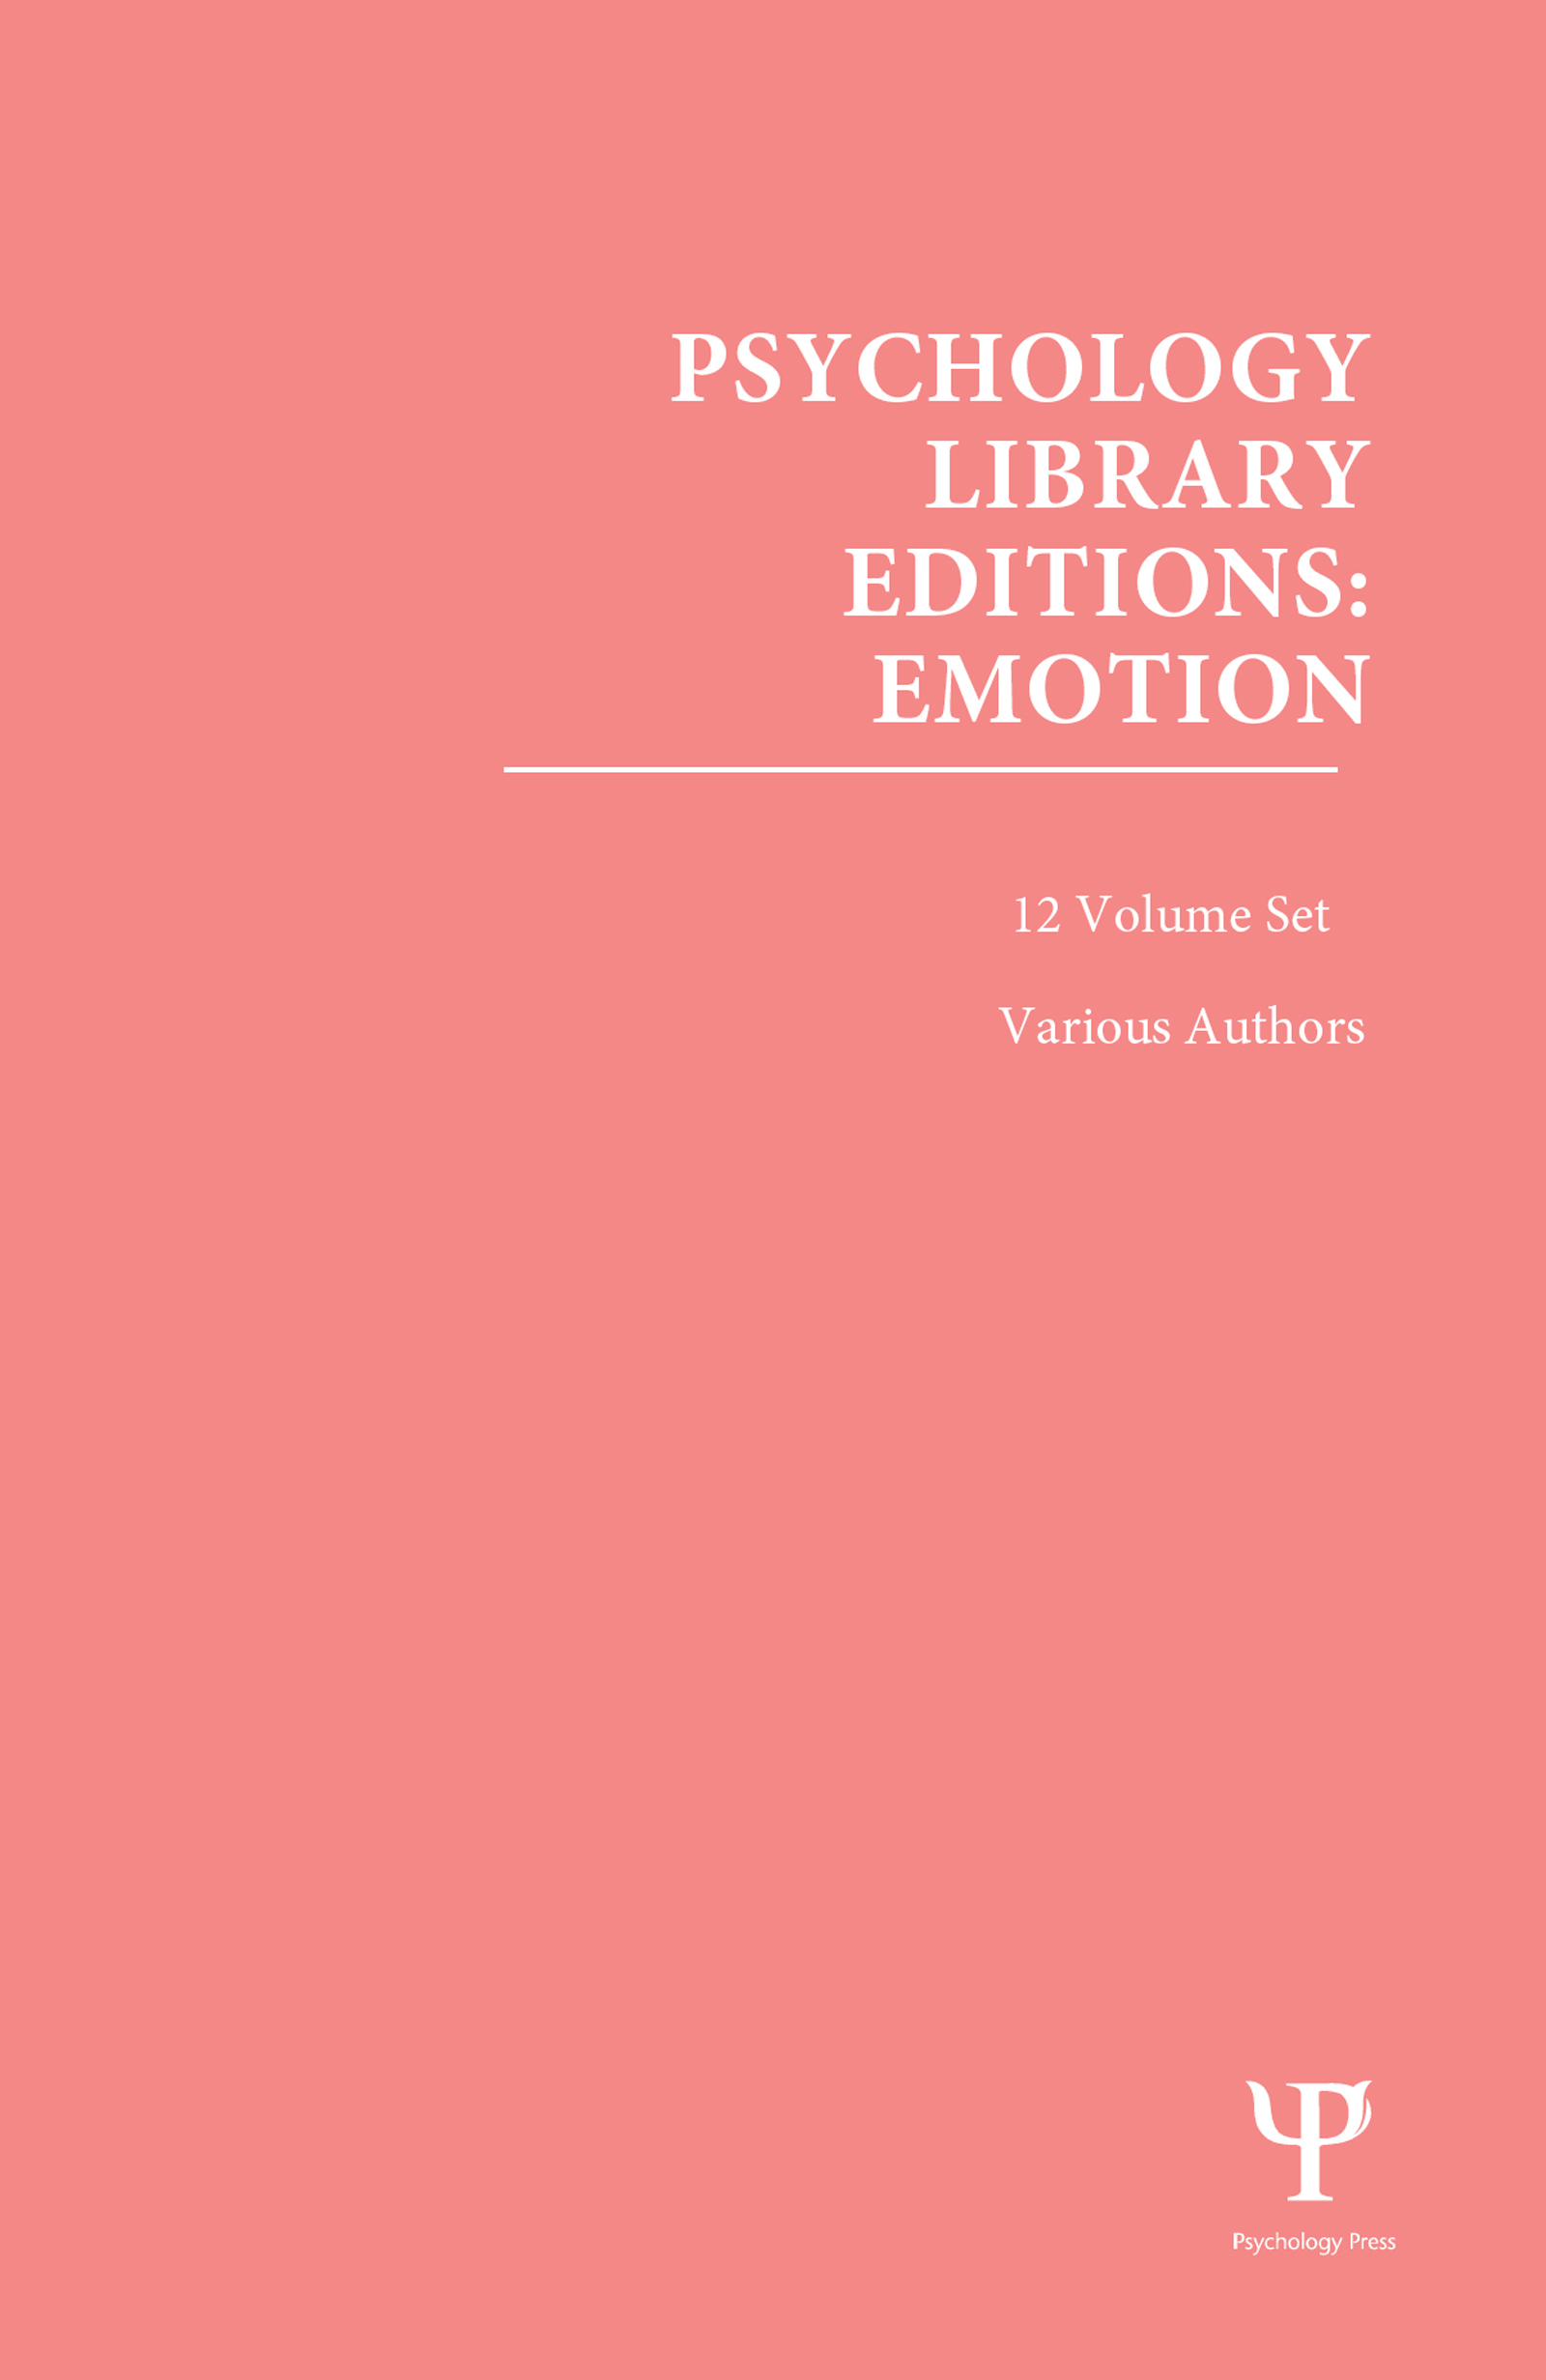 Psychology Library Editions: Emotion: 12 Volume Set book cover